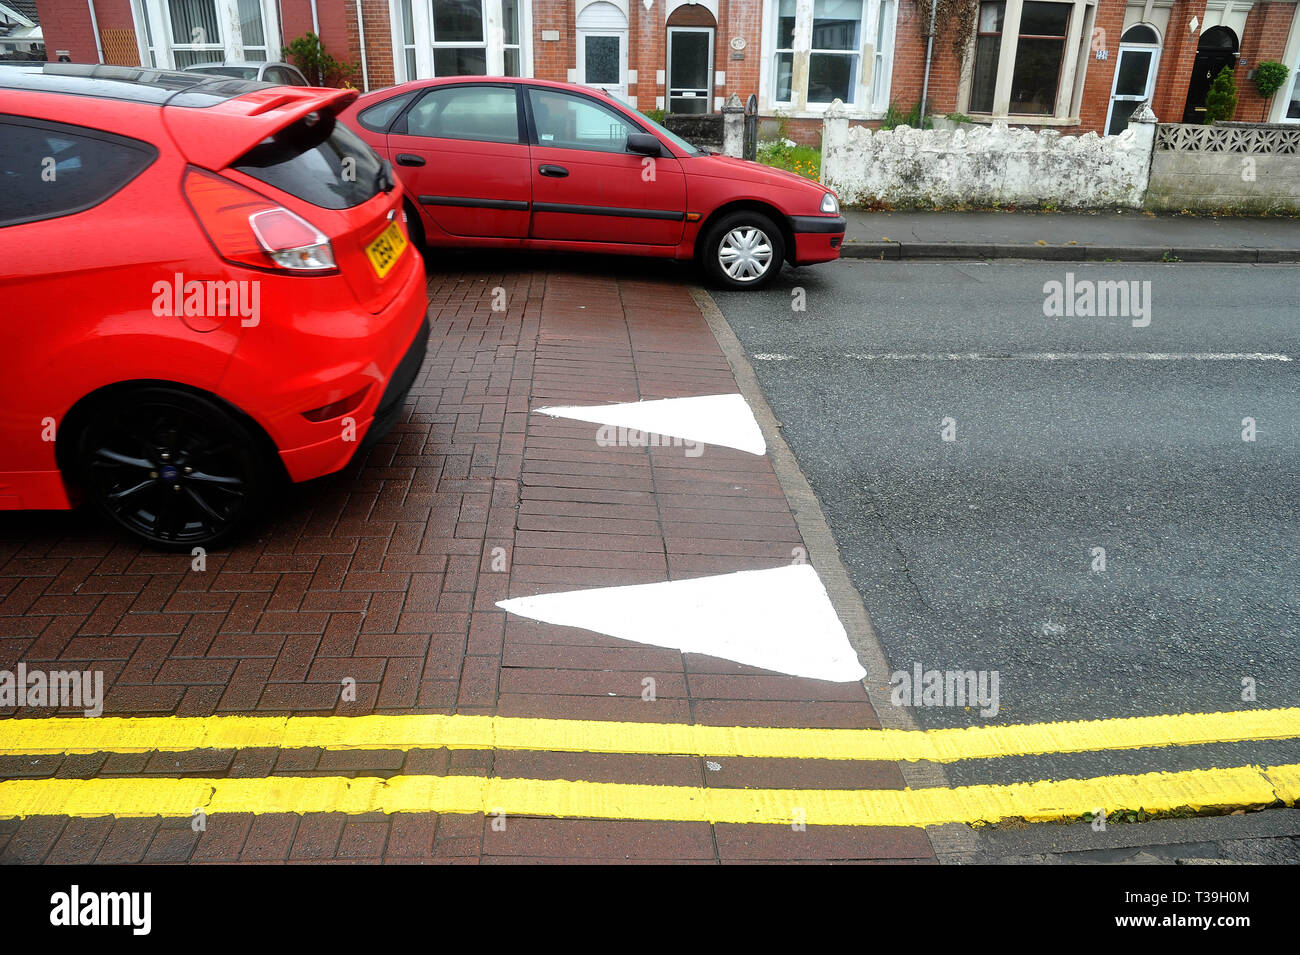 Humps In Road Stock Photos & Humps In Road Stock Images - Alamy